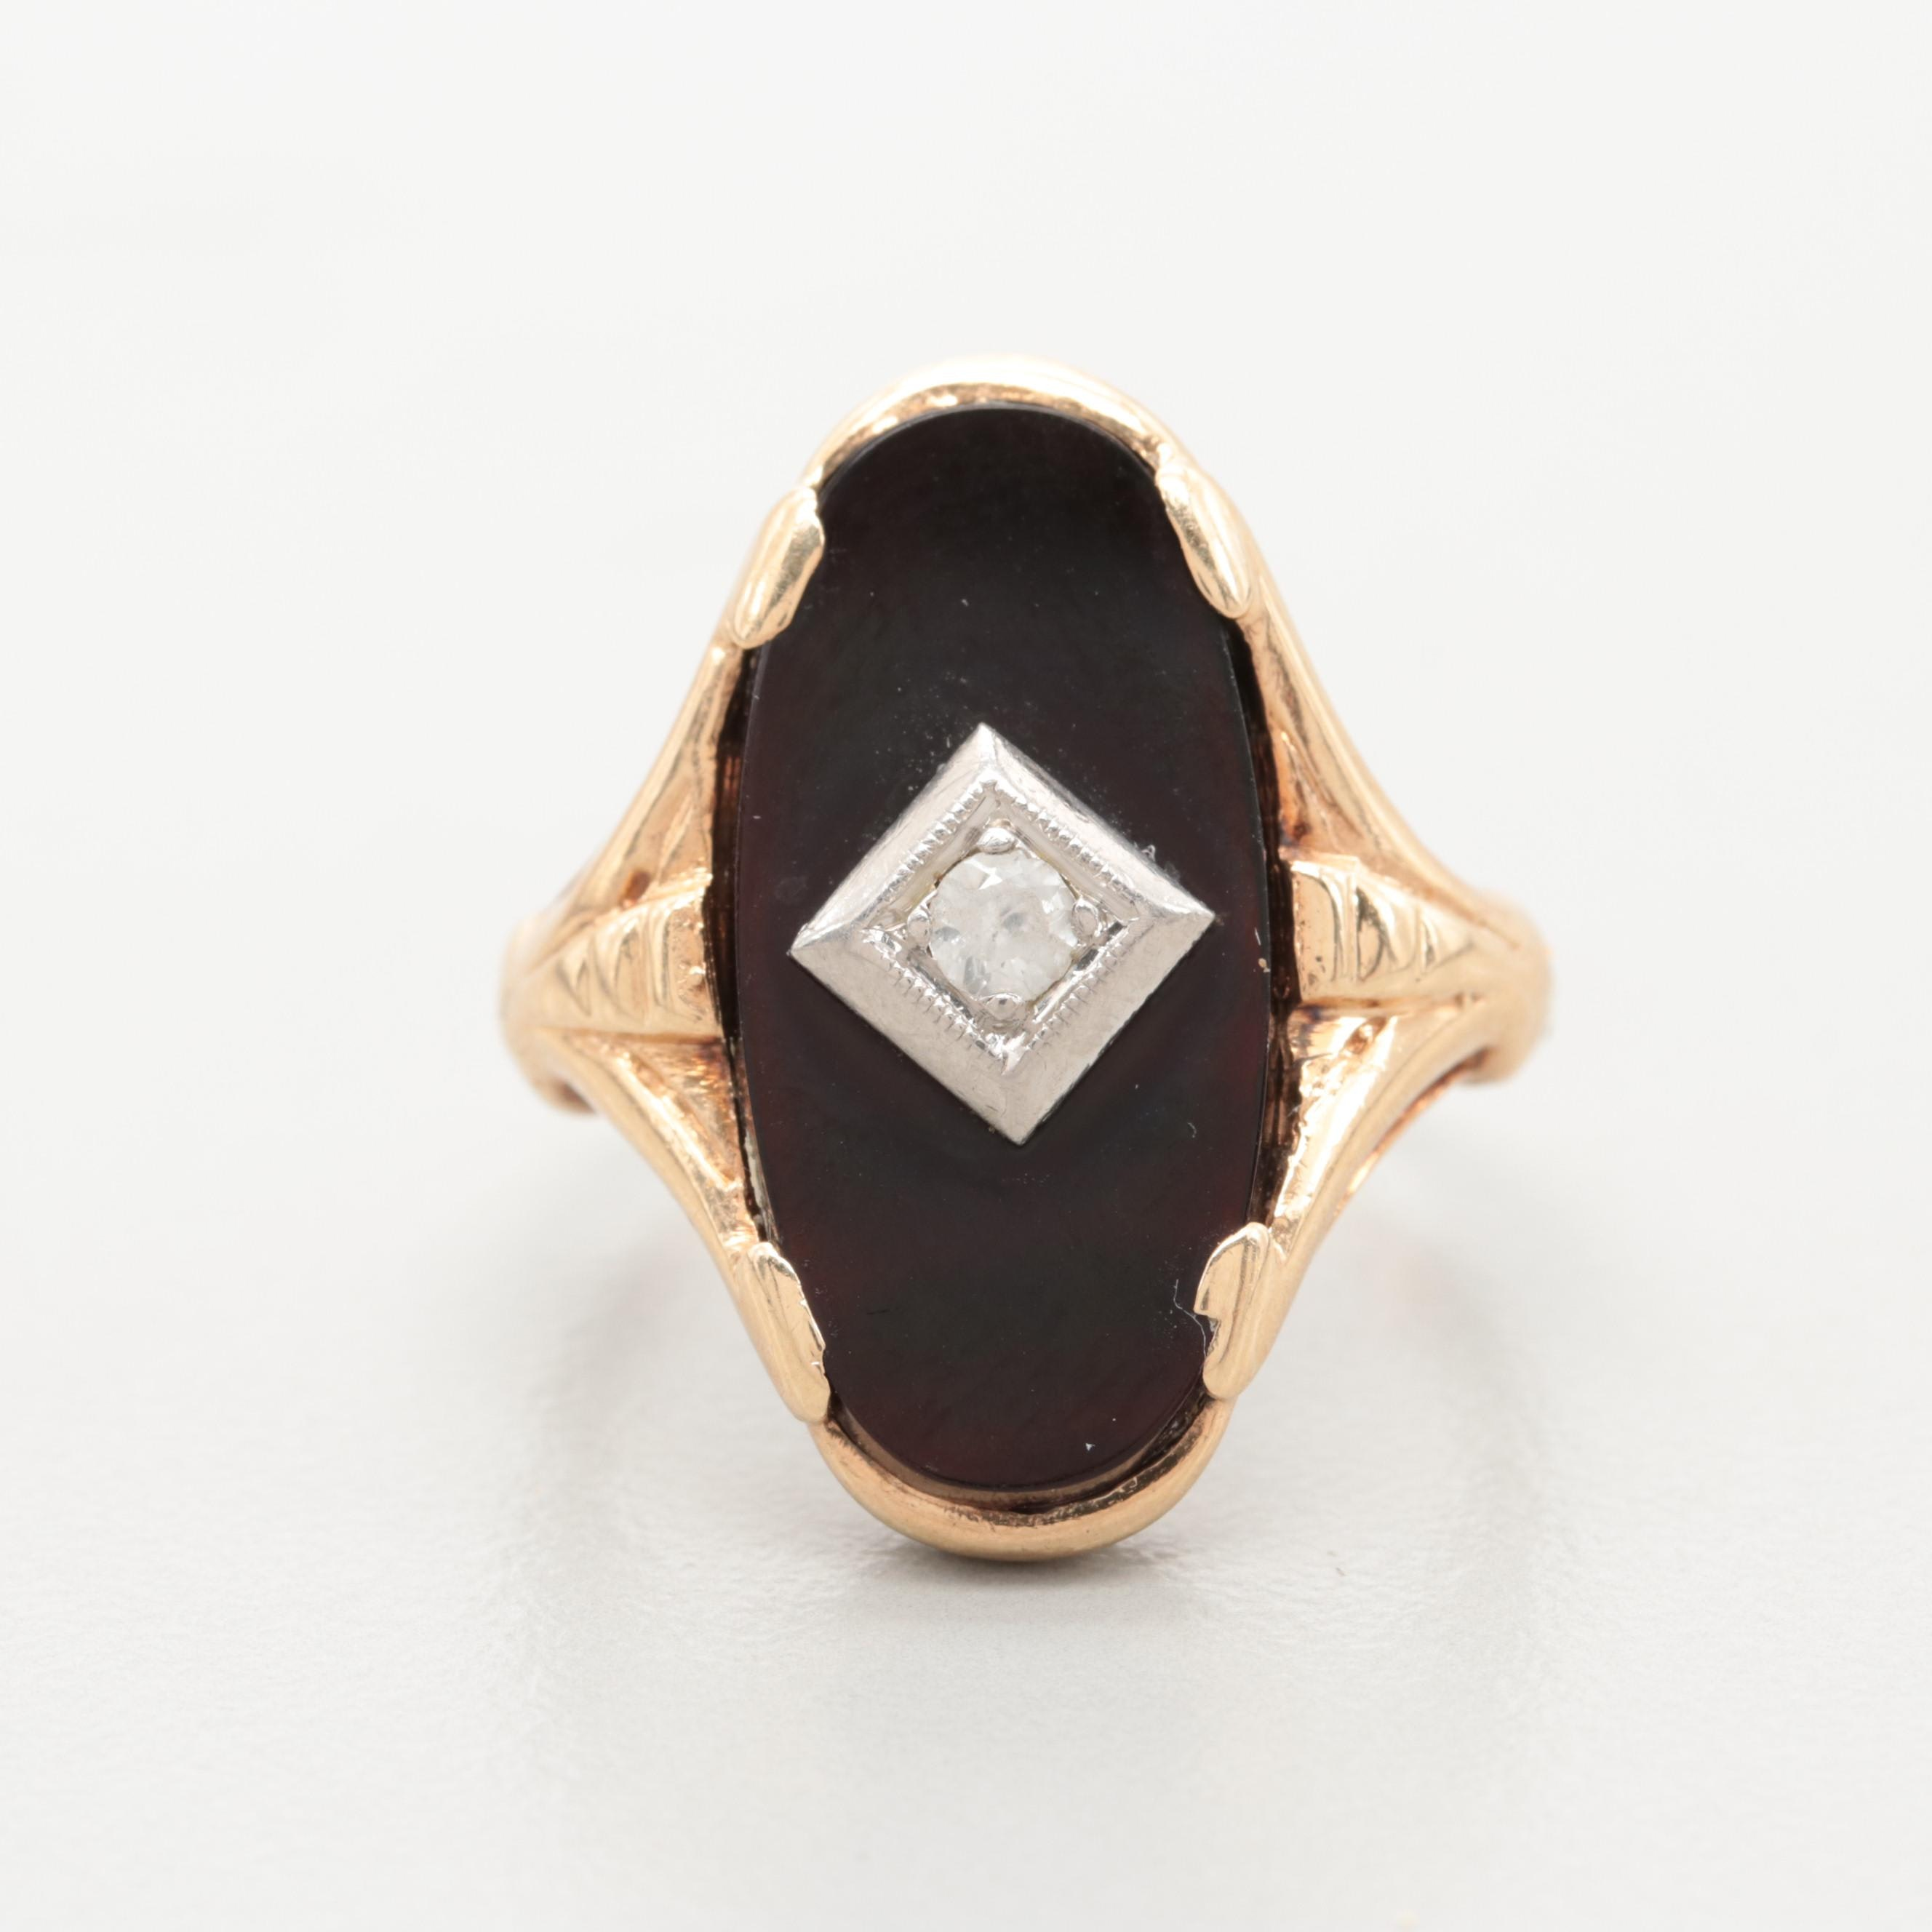 Vintage 10K Yellow Gold White Sapphire and Black Onyx Ring